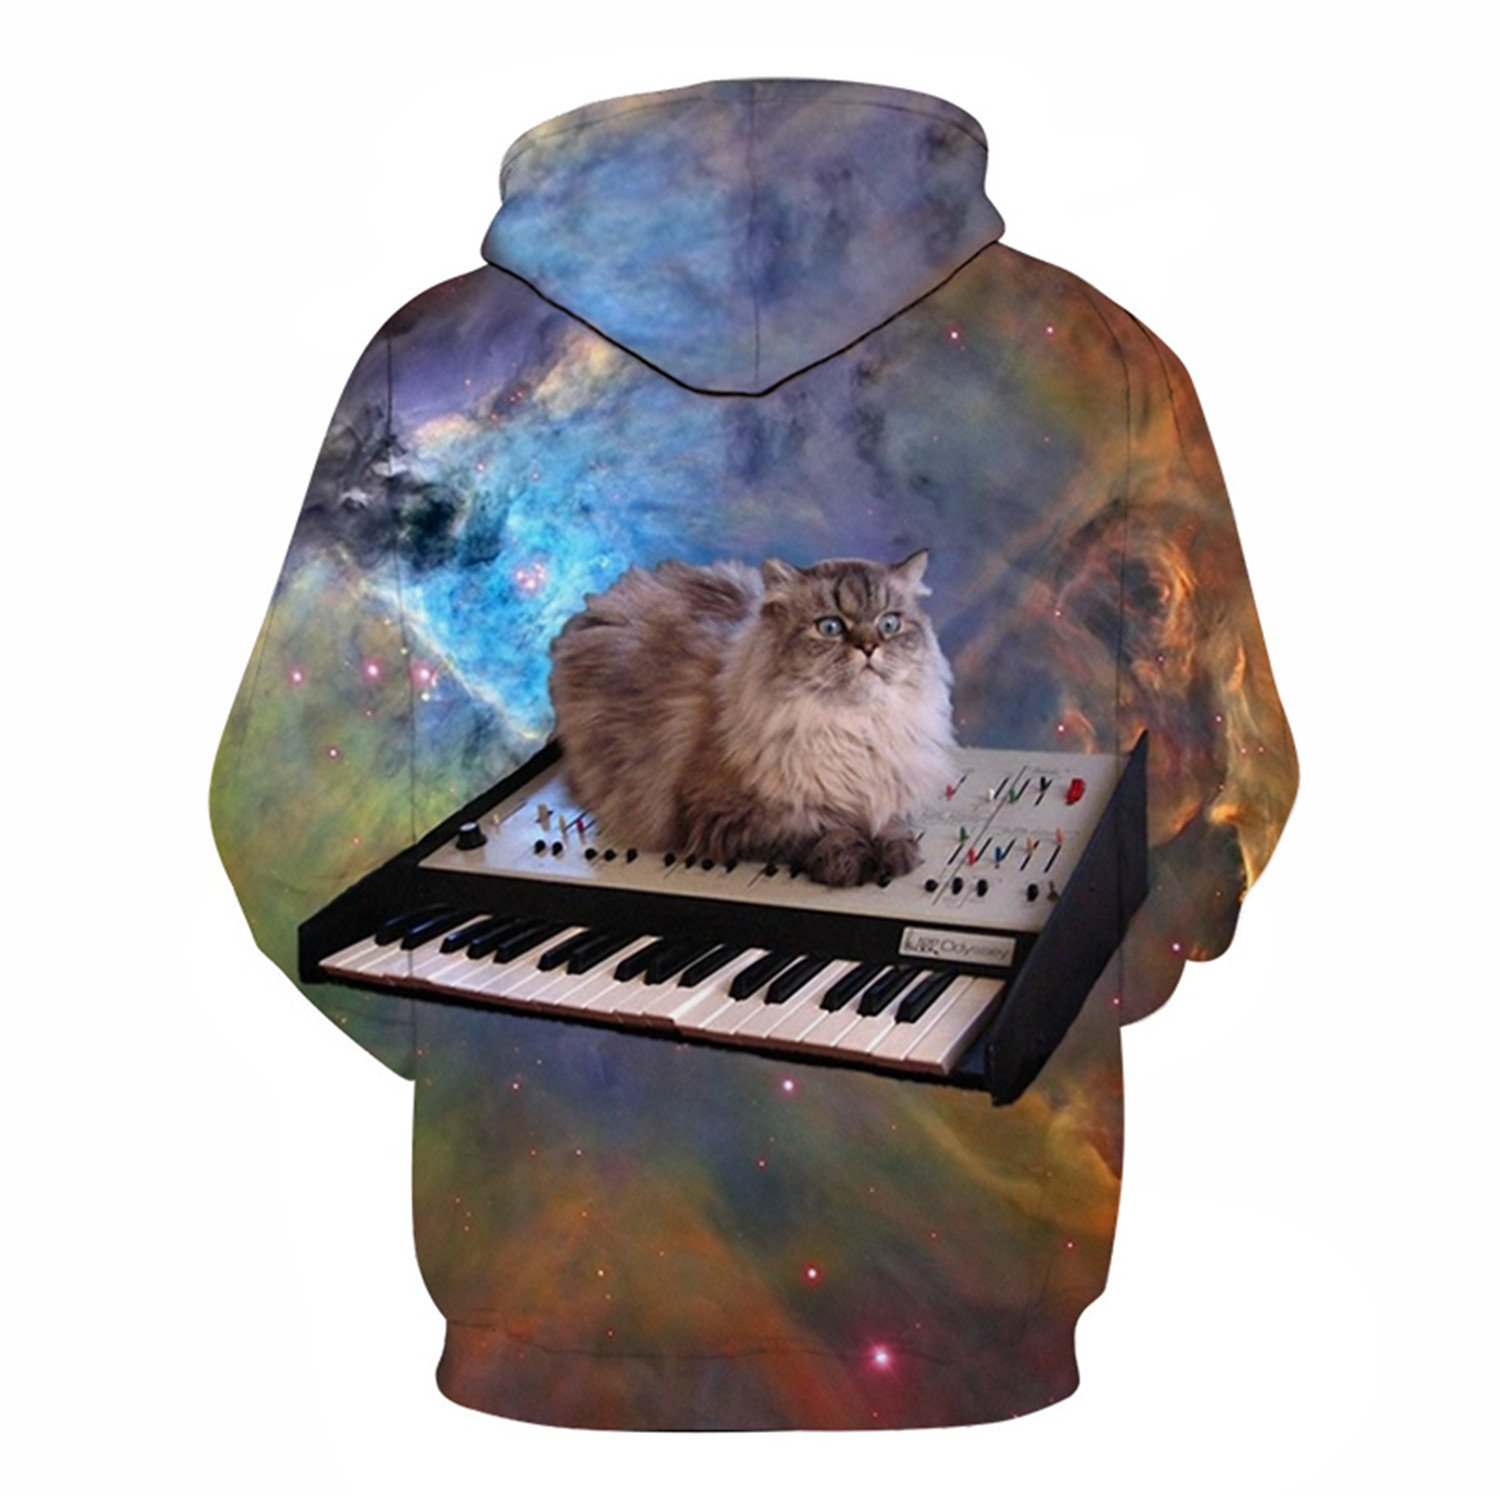 Matterin Christiao Space Cat Hoodies Men 3D Sweatshrits Hooded Pullover Fashion Tracksuit Printed 6XL Jacket Unisex Coats